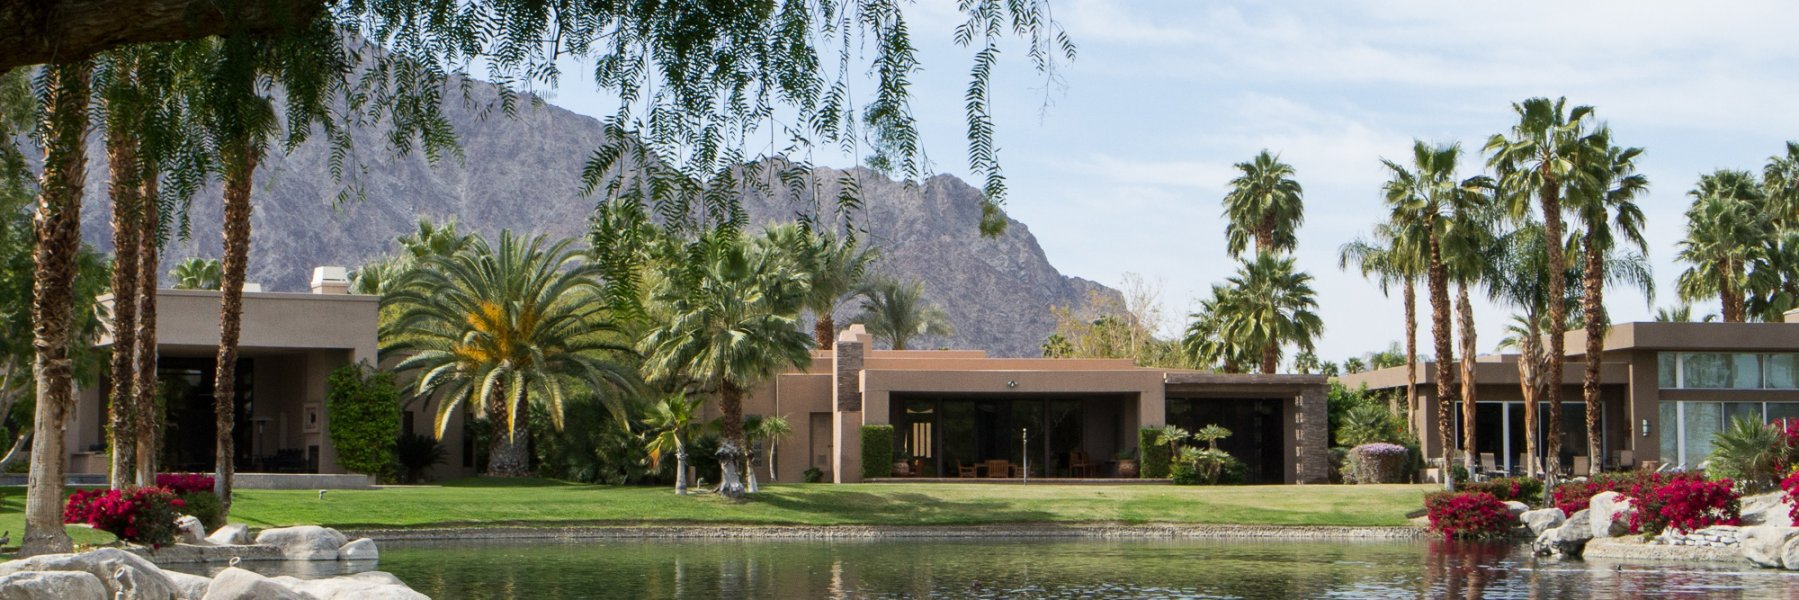 PGA West Stadium is a community of homes in La Quinta California